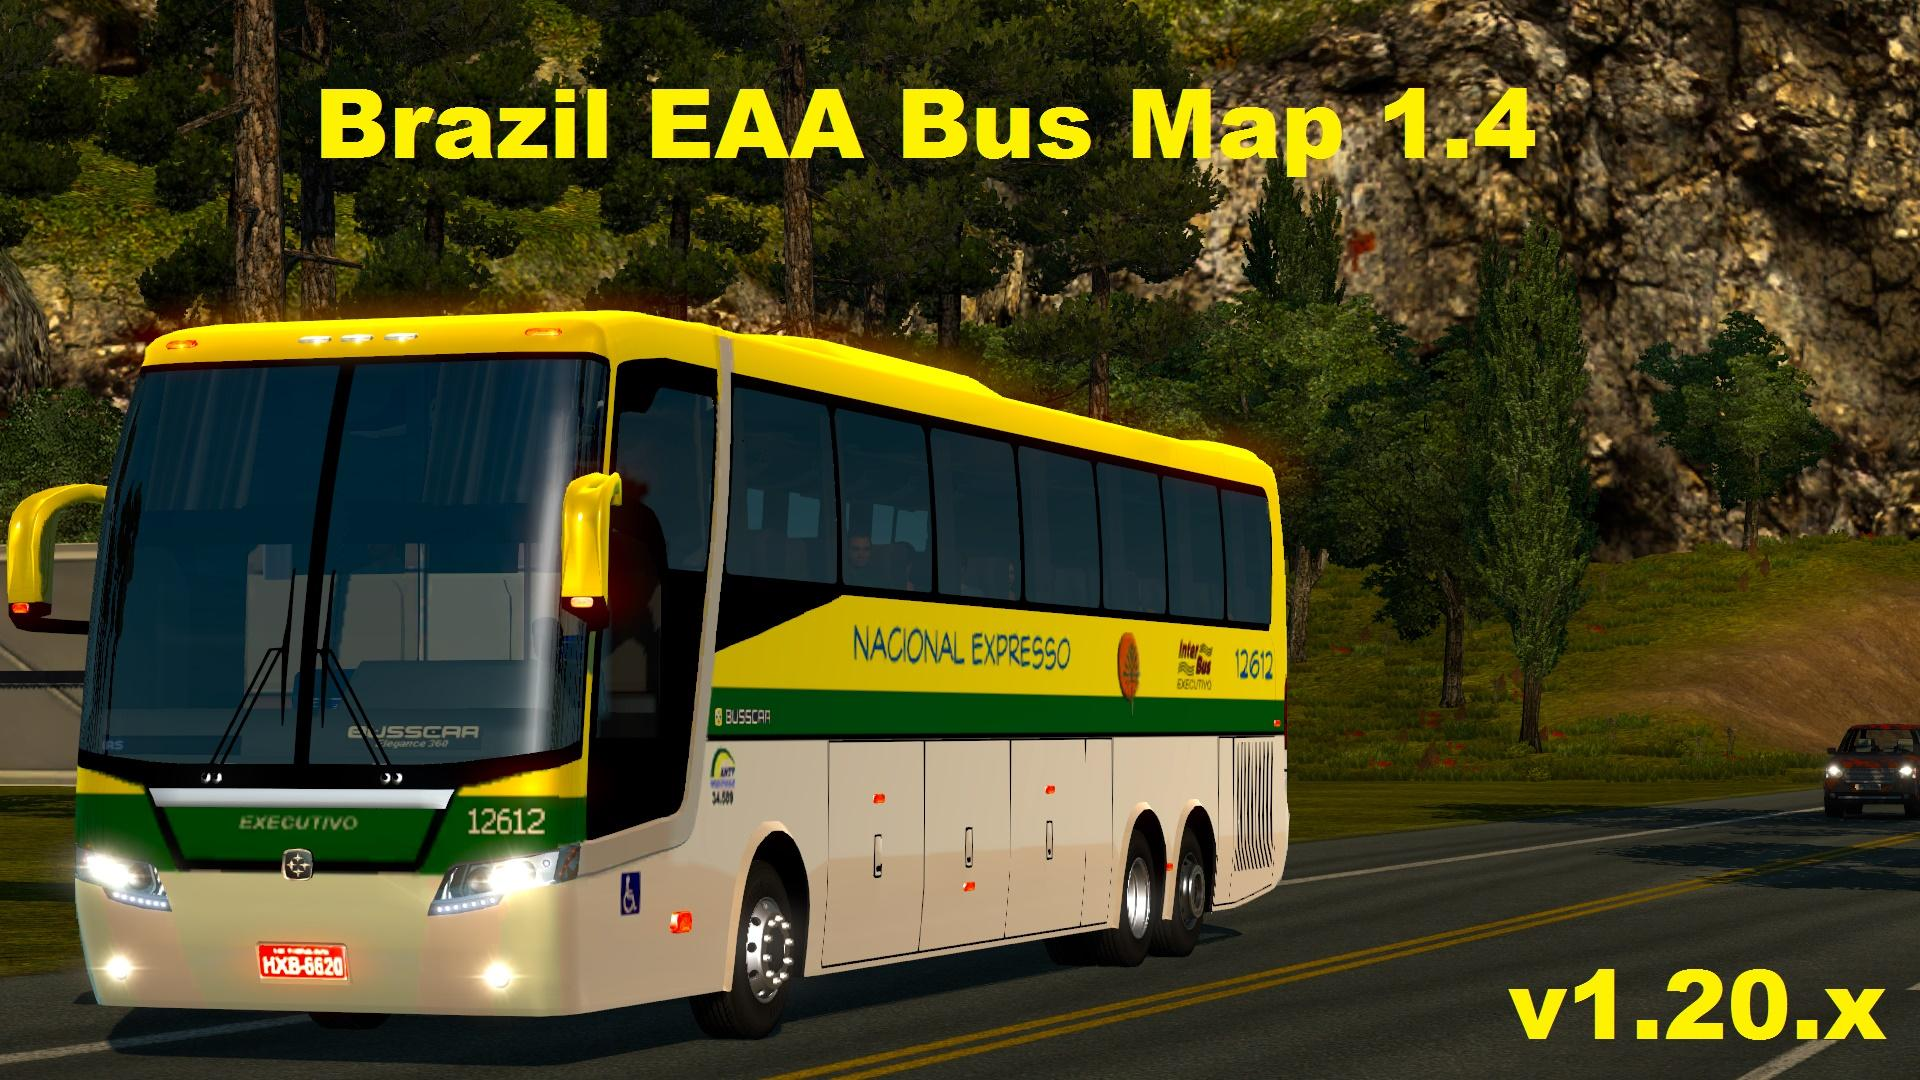 BRAZIL EAA BUS MAP 1 4 1 20 Mod  Euro Truck Simulator 2 Mods BRAZIL EAA BUS MAP 1 4 1 20 Mod